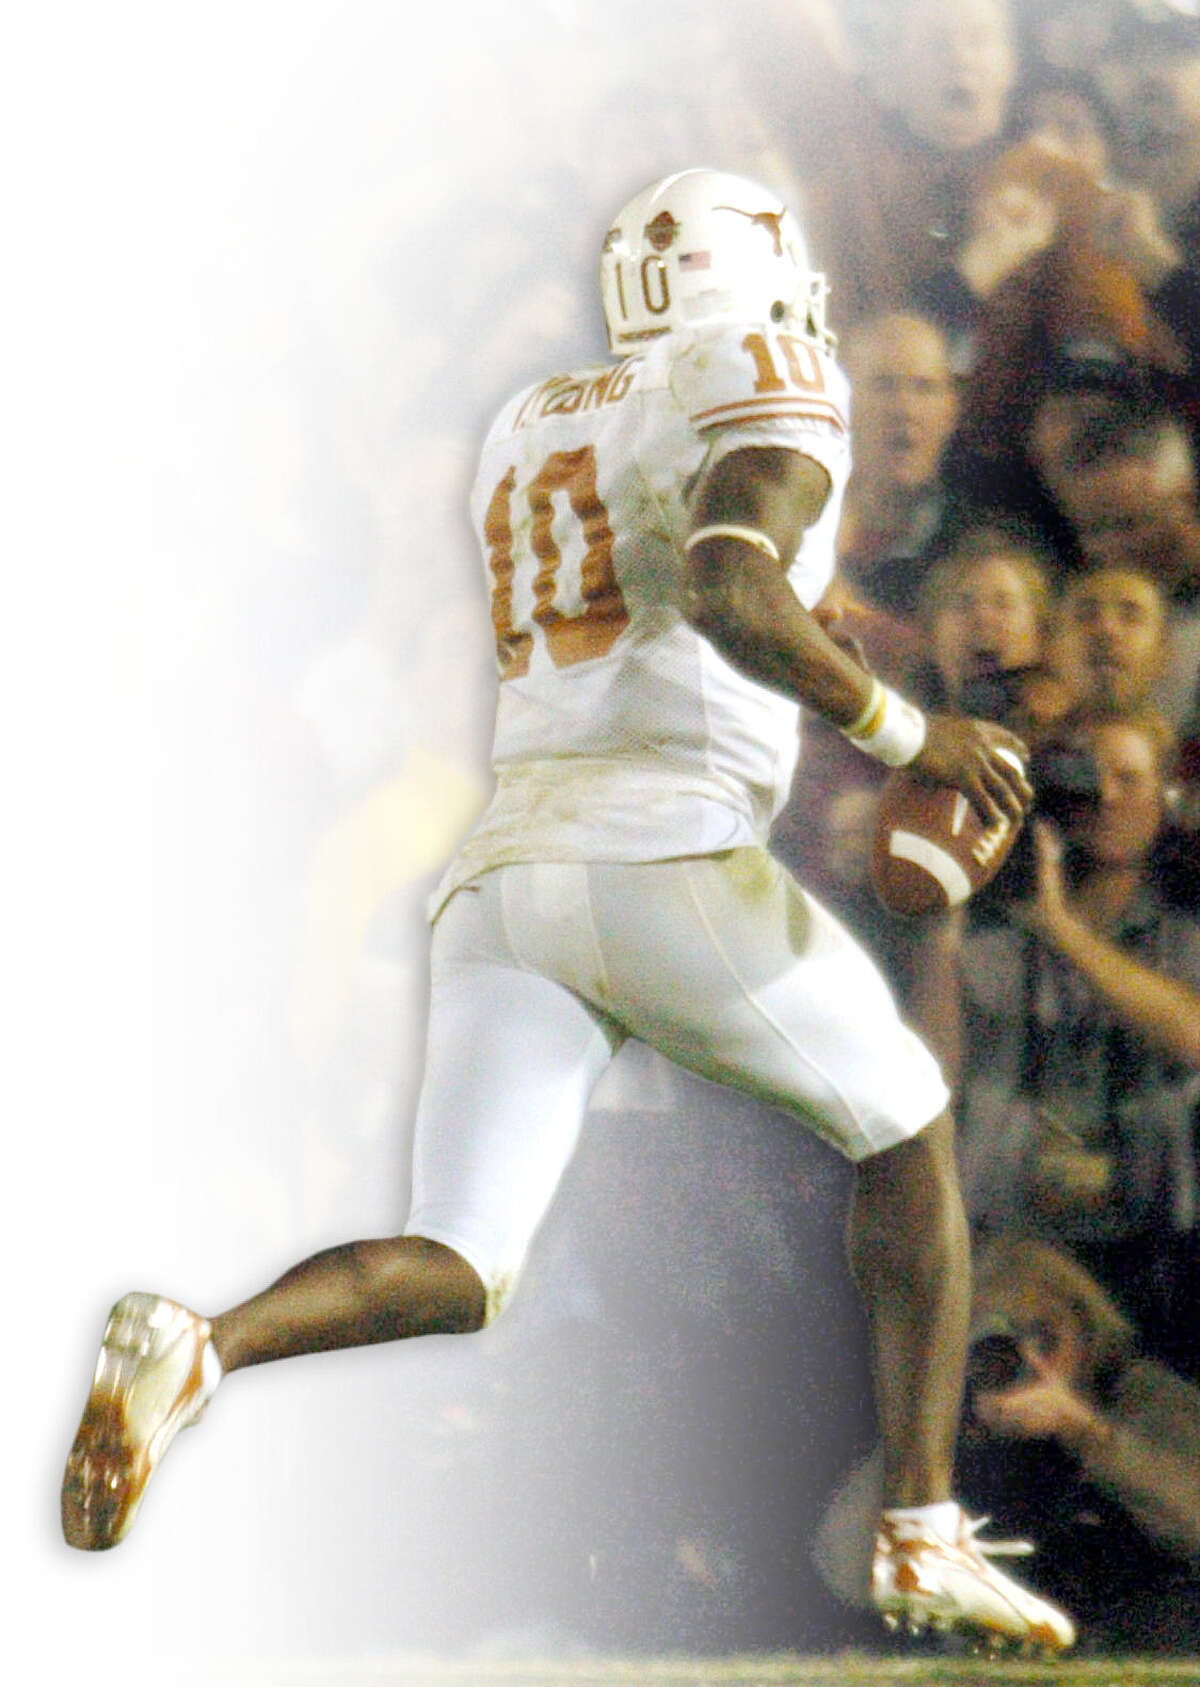 Vince Young's TD in the 2006 BCS title game will never be forgotten in Austin, but UT can start to let go with a new coach.